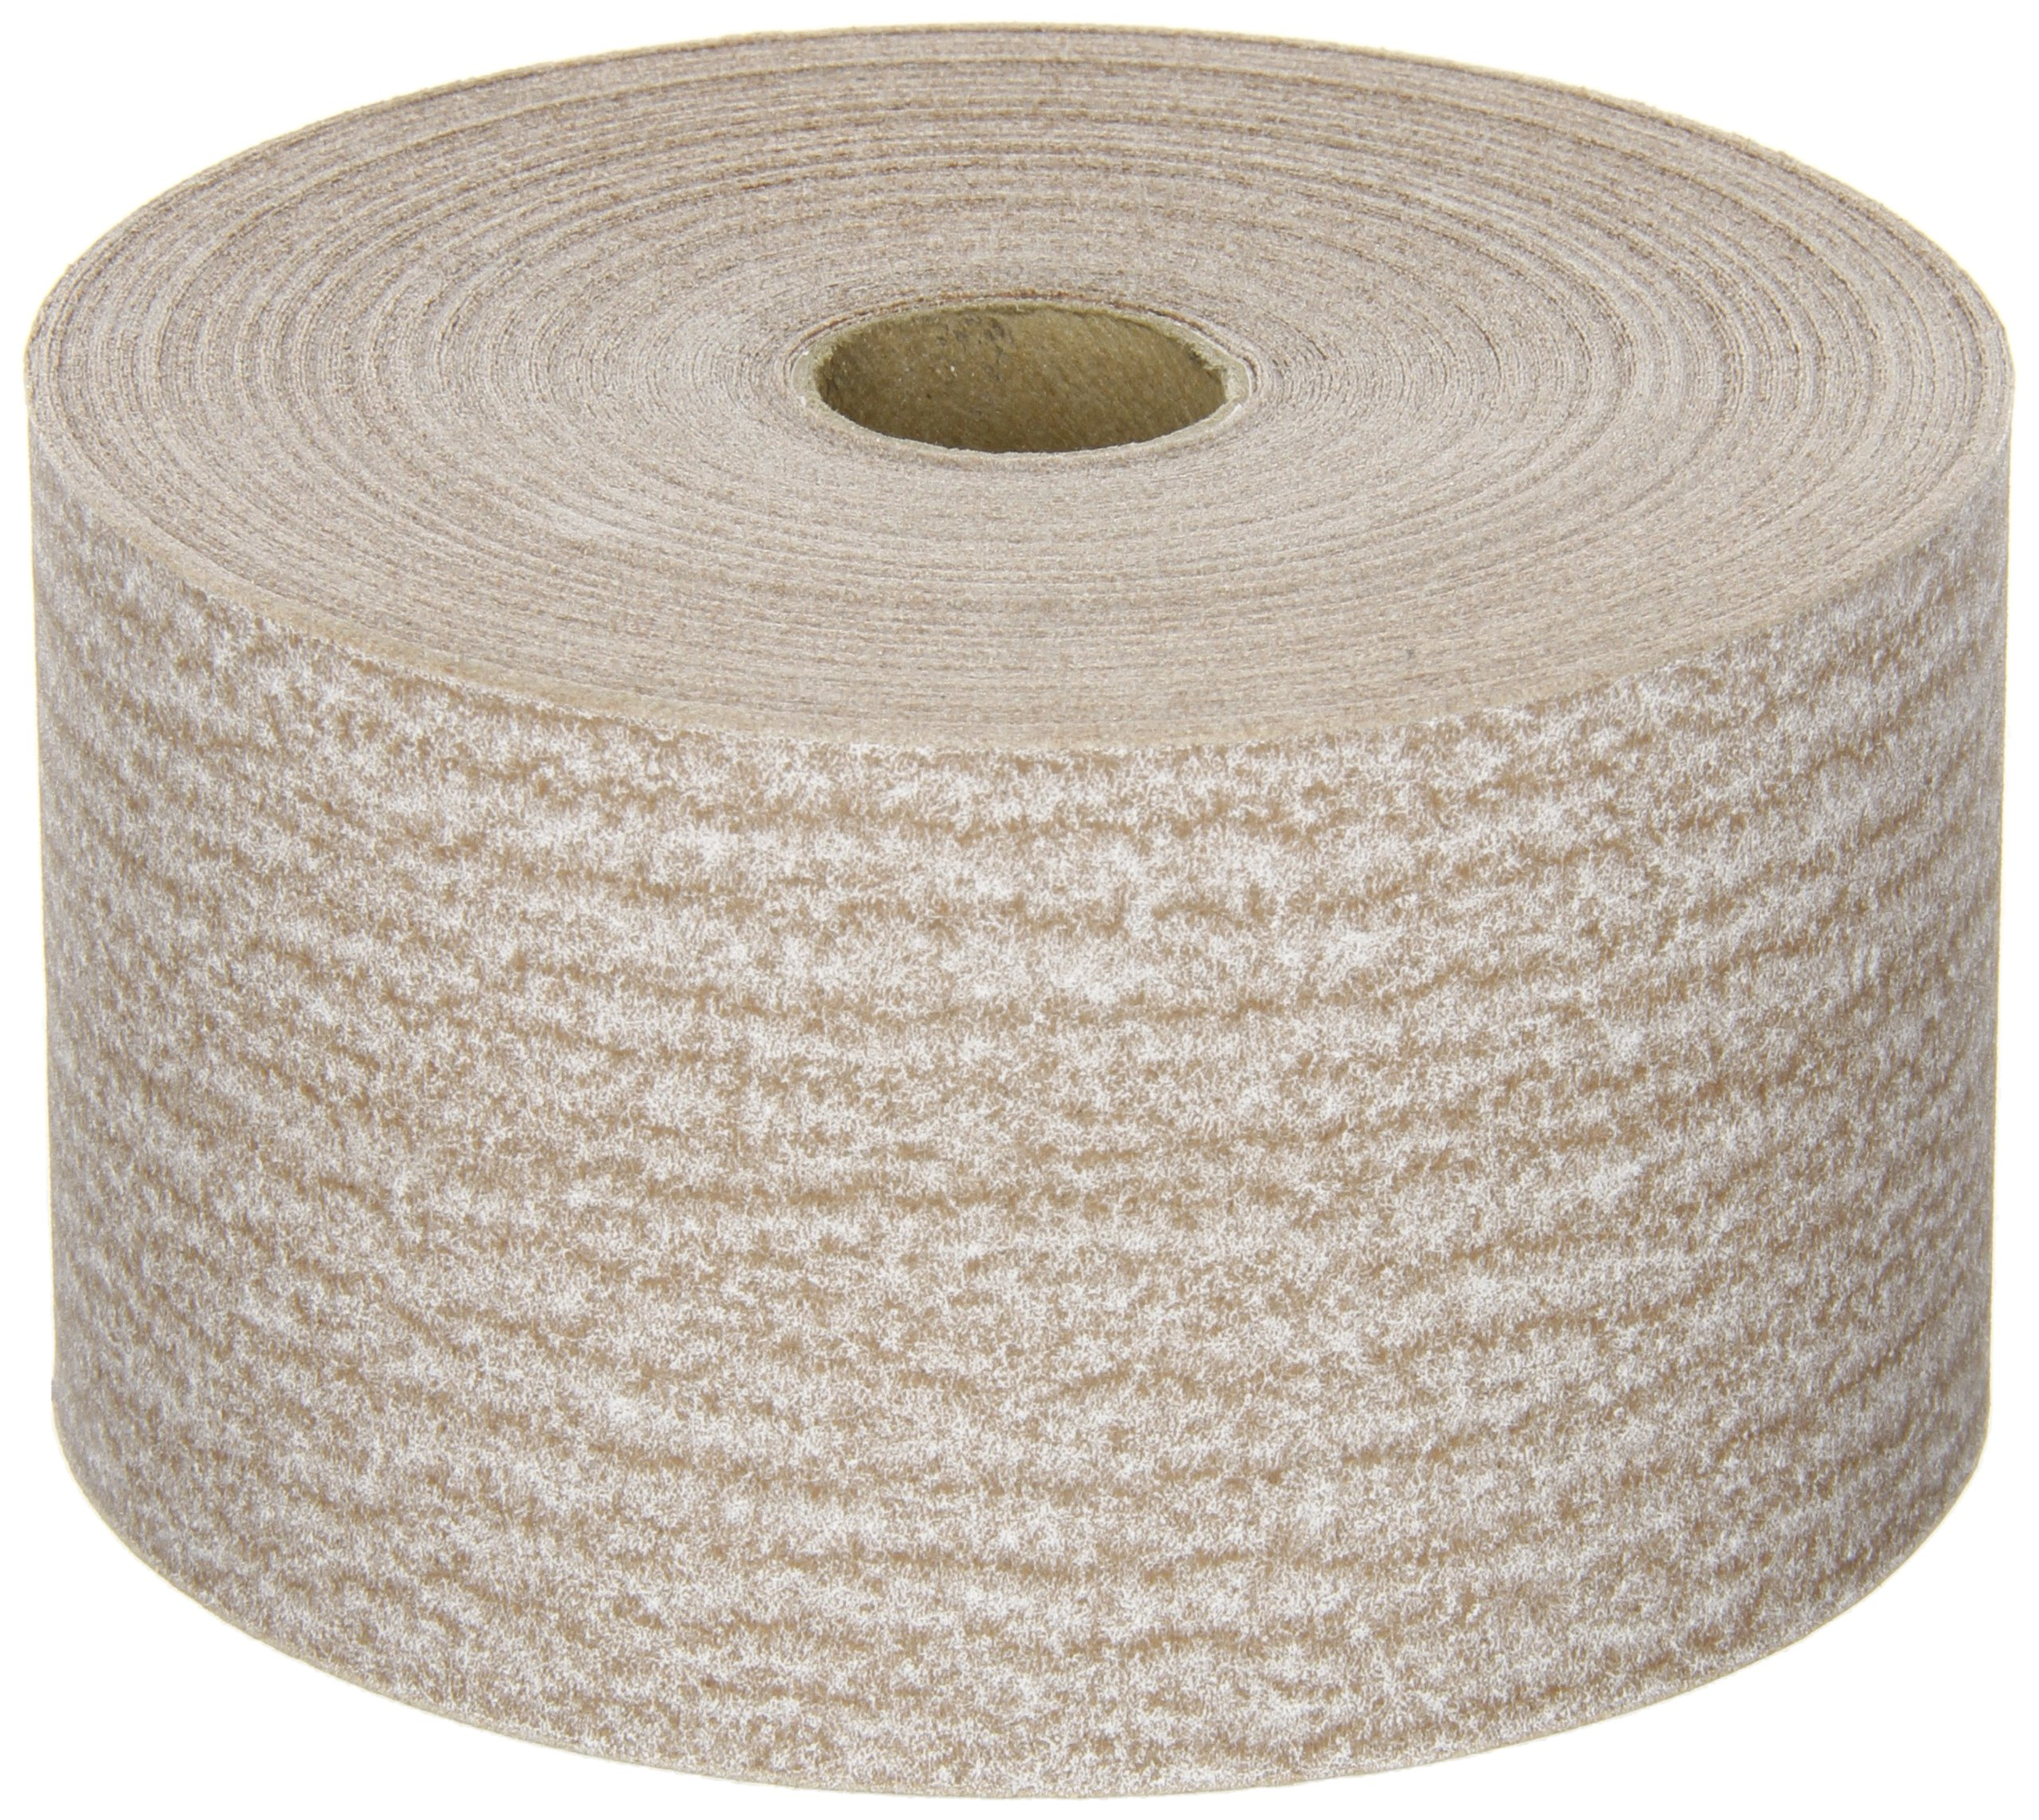 Norton A275 No-Fil Adalox Abrasive Roll, Paper Backing, Pressure Sensitive Adhesive, Aluminum Oxide, Waterproof, Roll 2-3/4'' Width x 45yd Length, Grit 180 (Pack of 1) by Norton Abrasives - St. Gobain